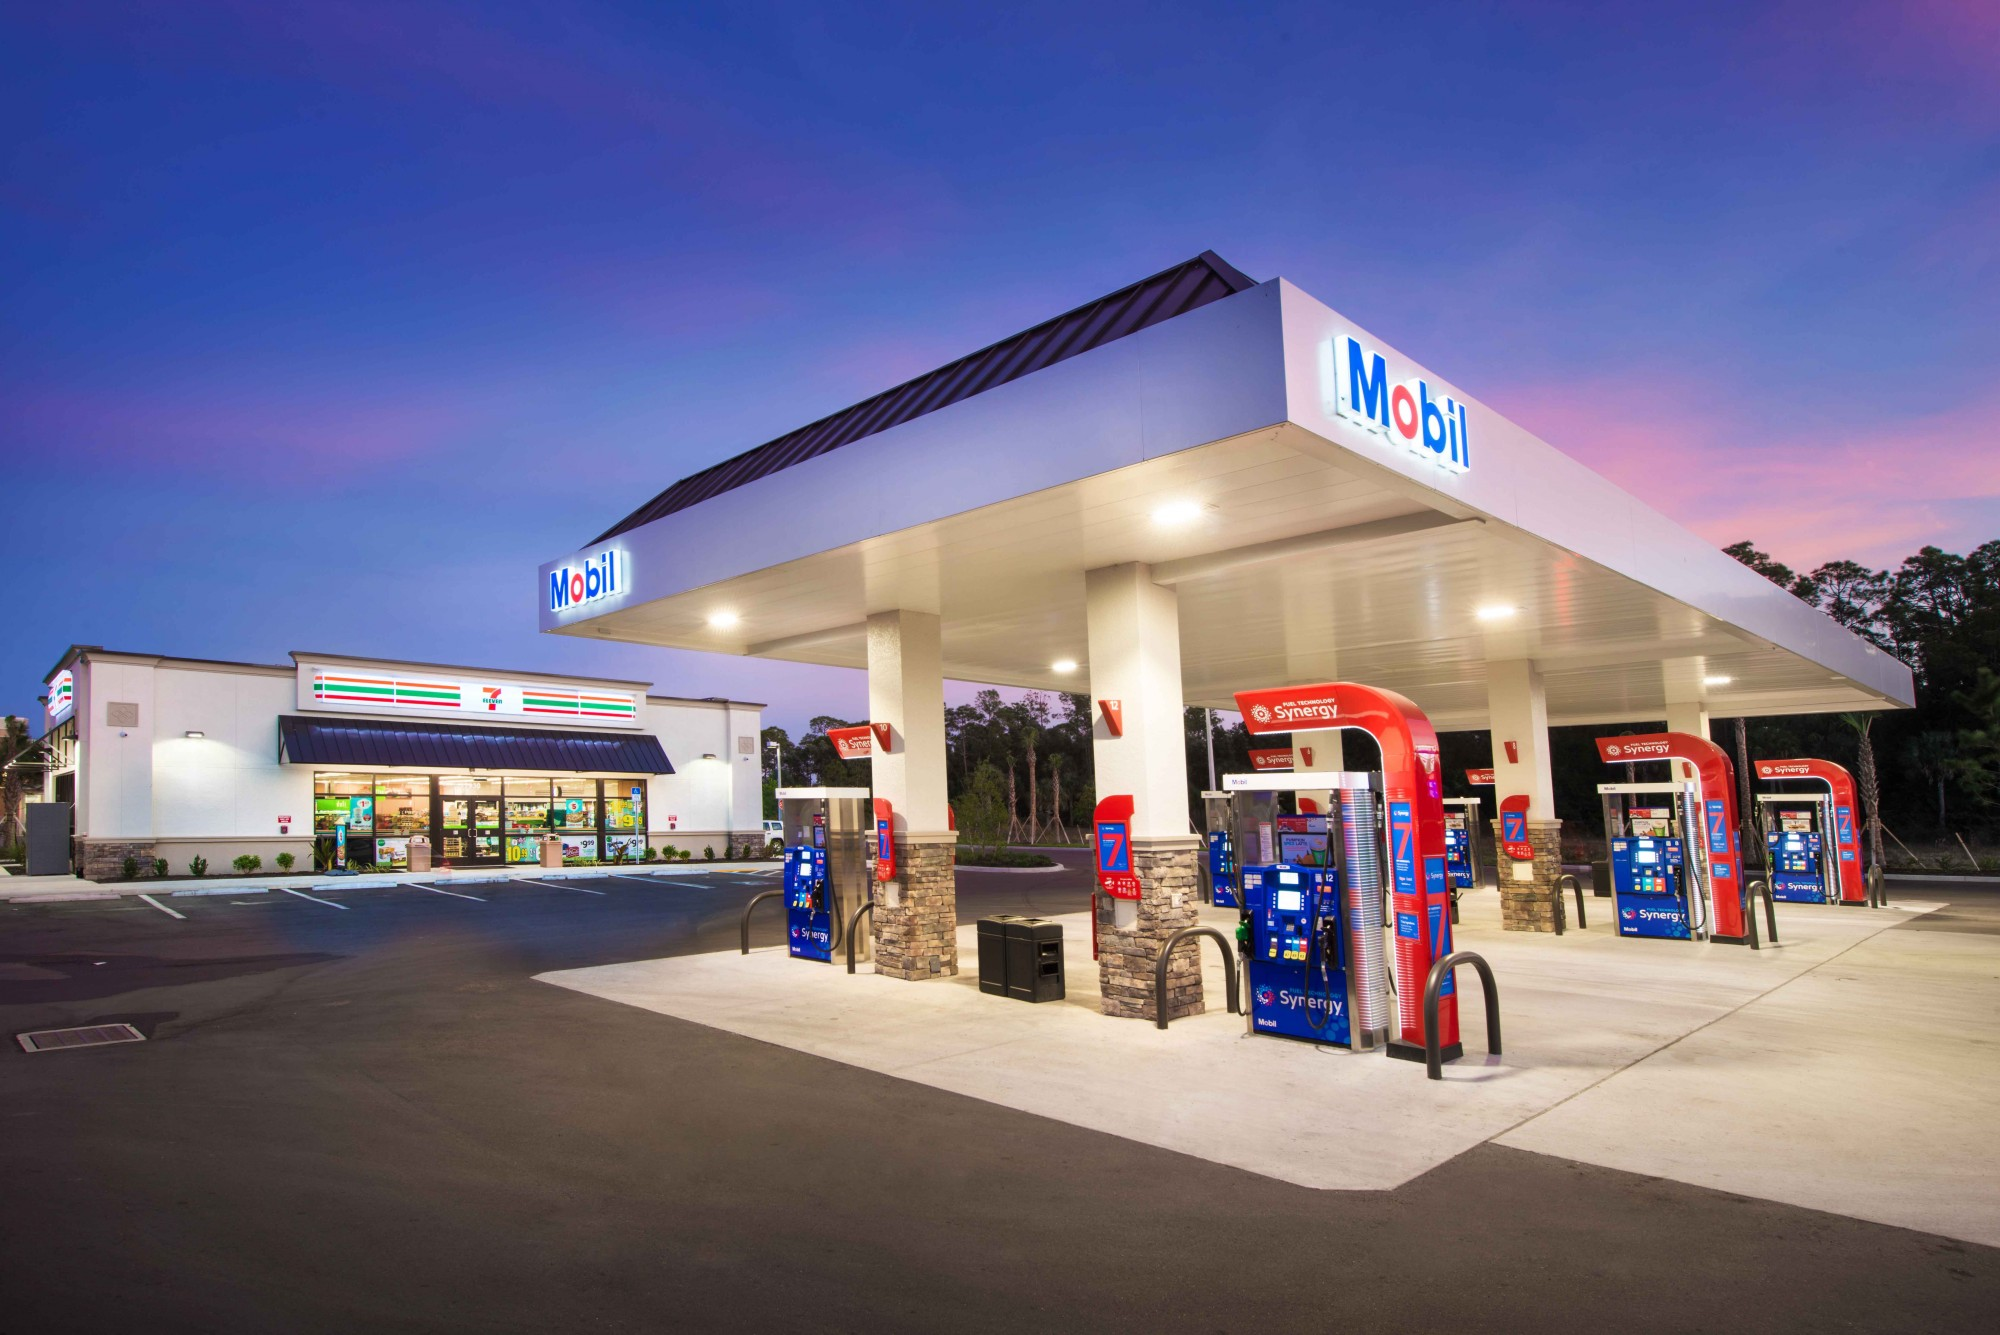 7-Eleven in North Fort Myers, Florida